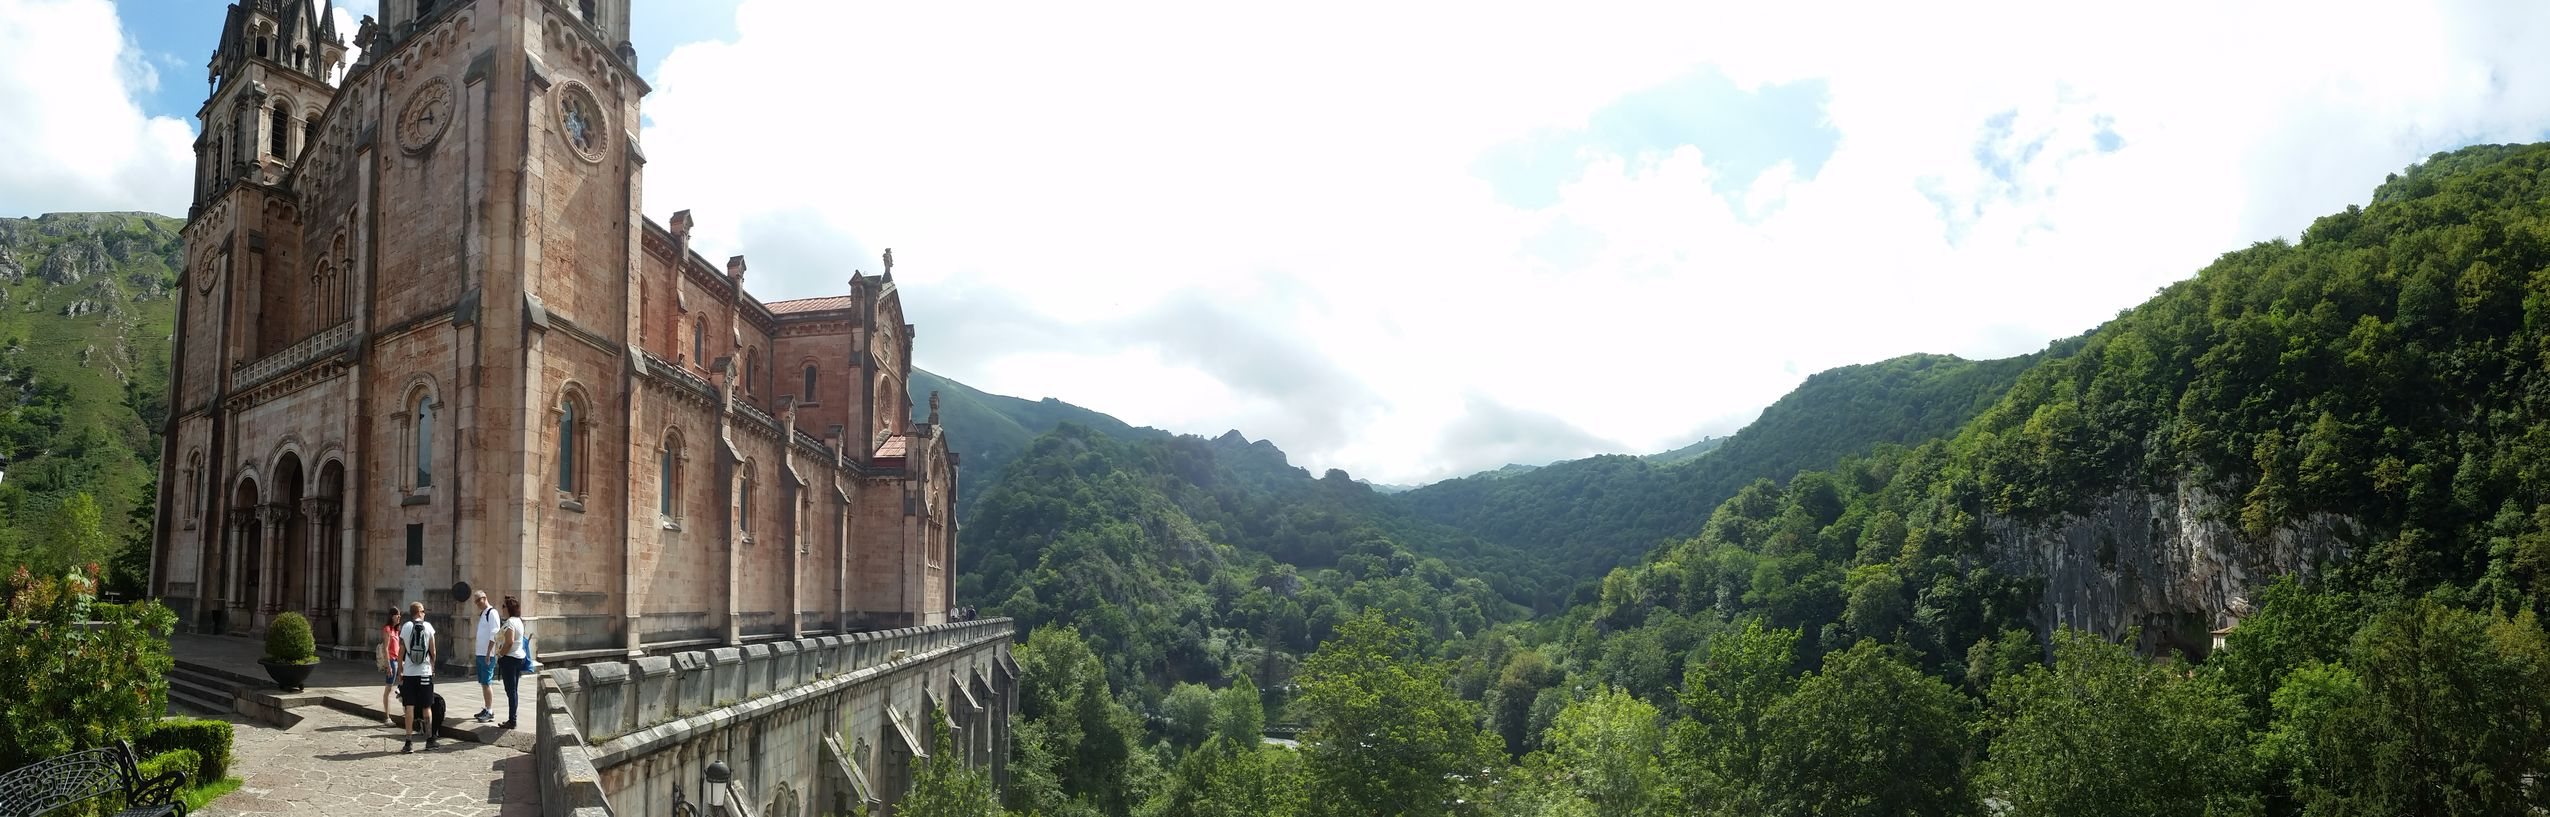 Mountain Architecture Mountain Range Asturias , Spain Mobile Photography Mountain_collection Landscape_Collection Panoramic Historical Building Covadonga Basilica Stonework Religious Buildings